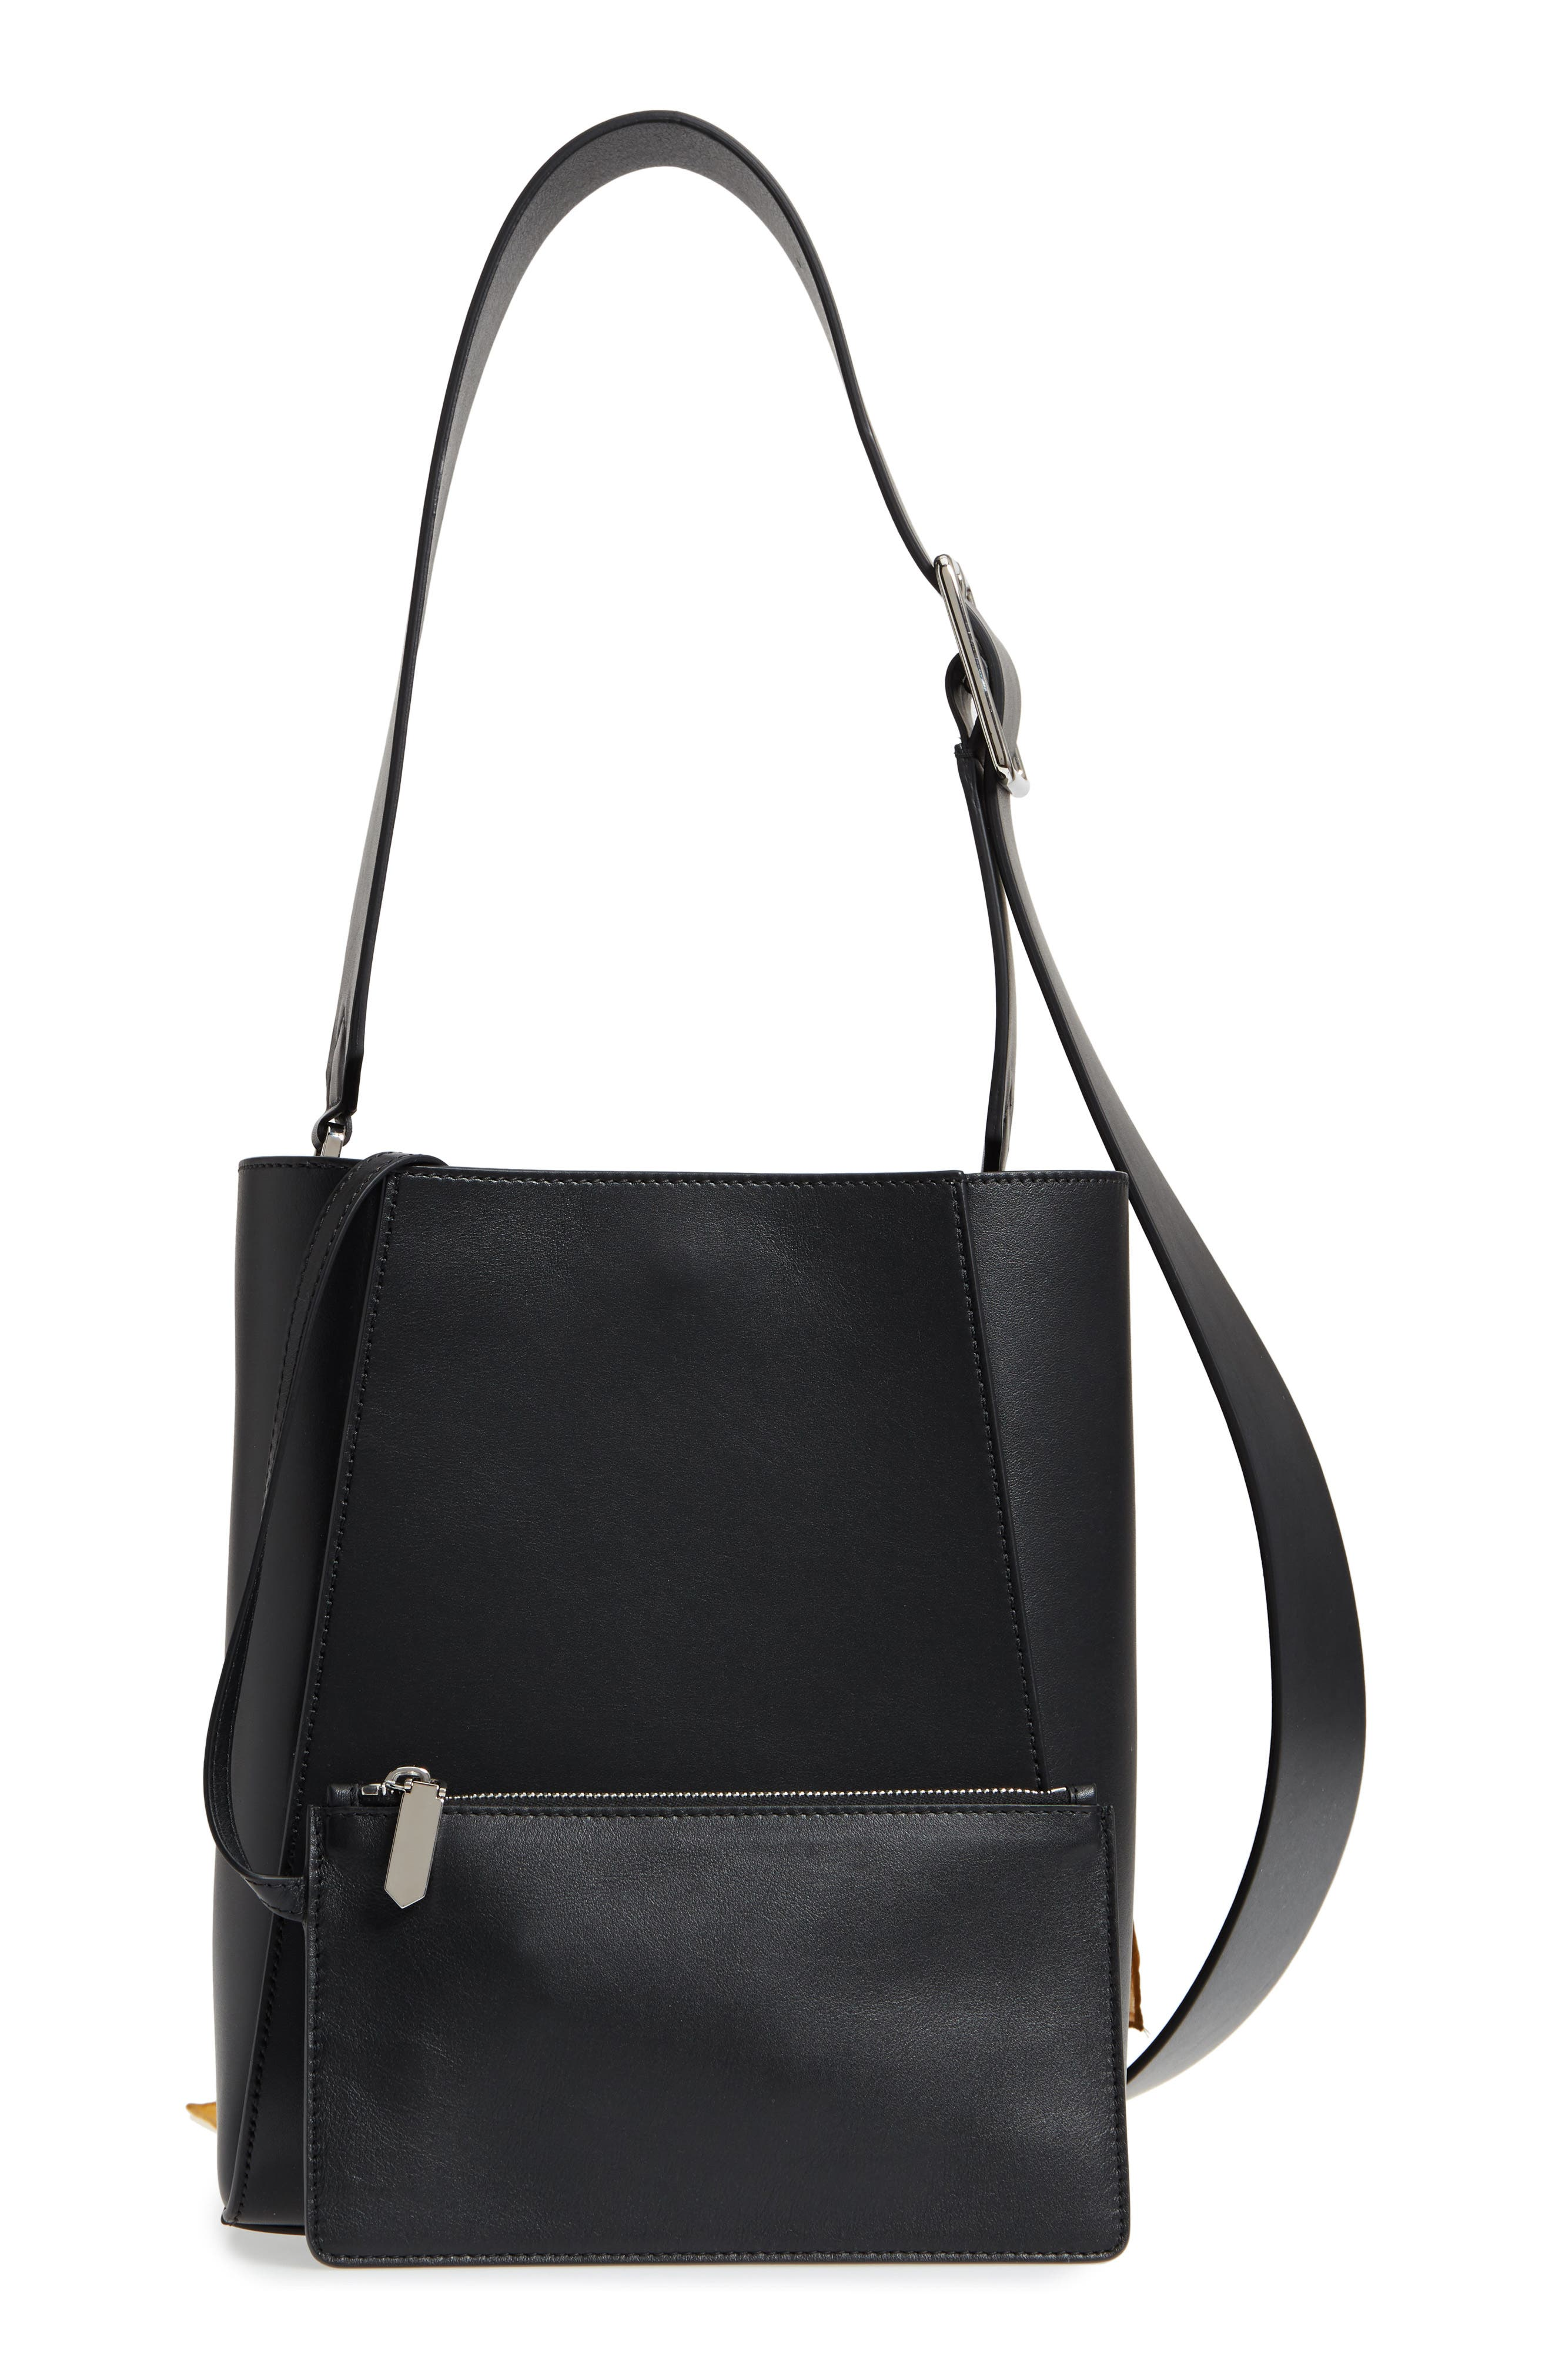 X Andy Warhol Foundation Small Bucket Bag With Bandana & Removable Pouch by Calvin Klein 205 W39 Nyc